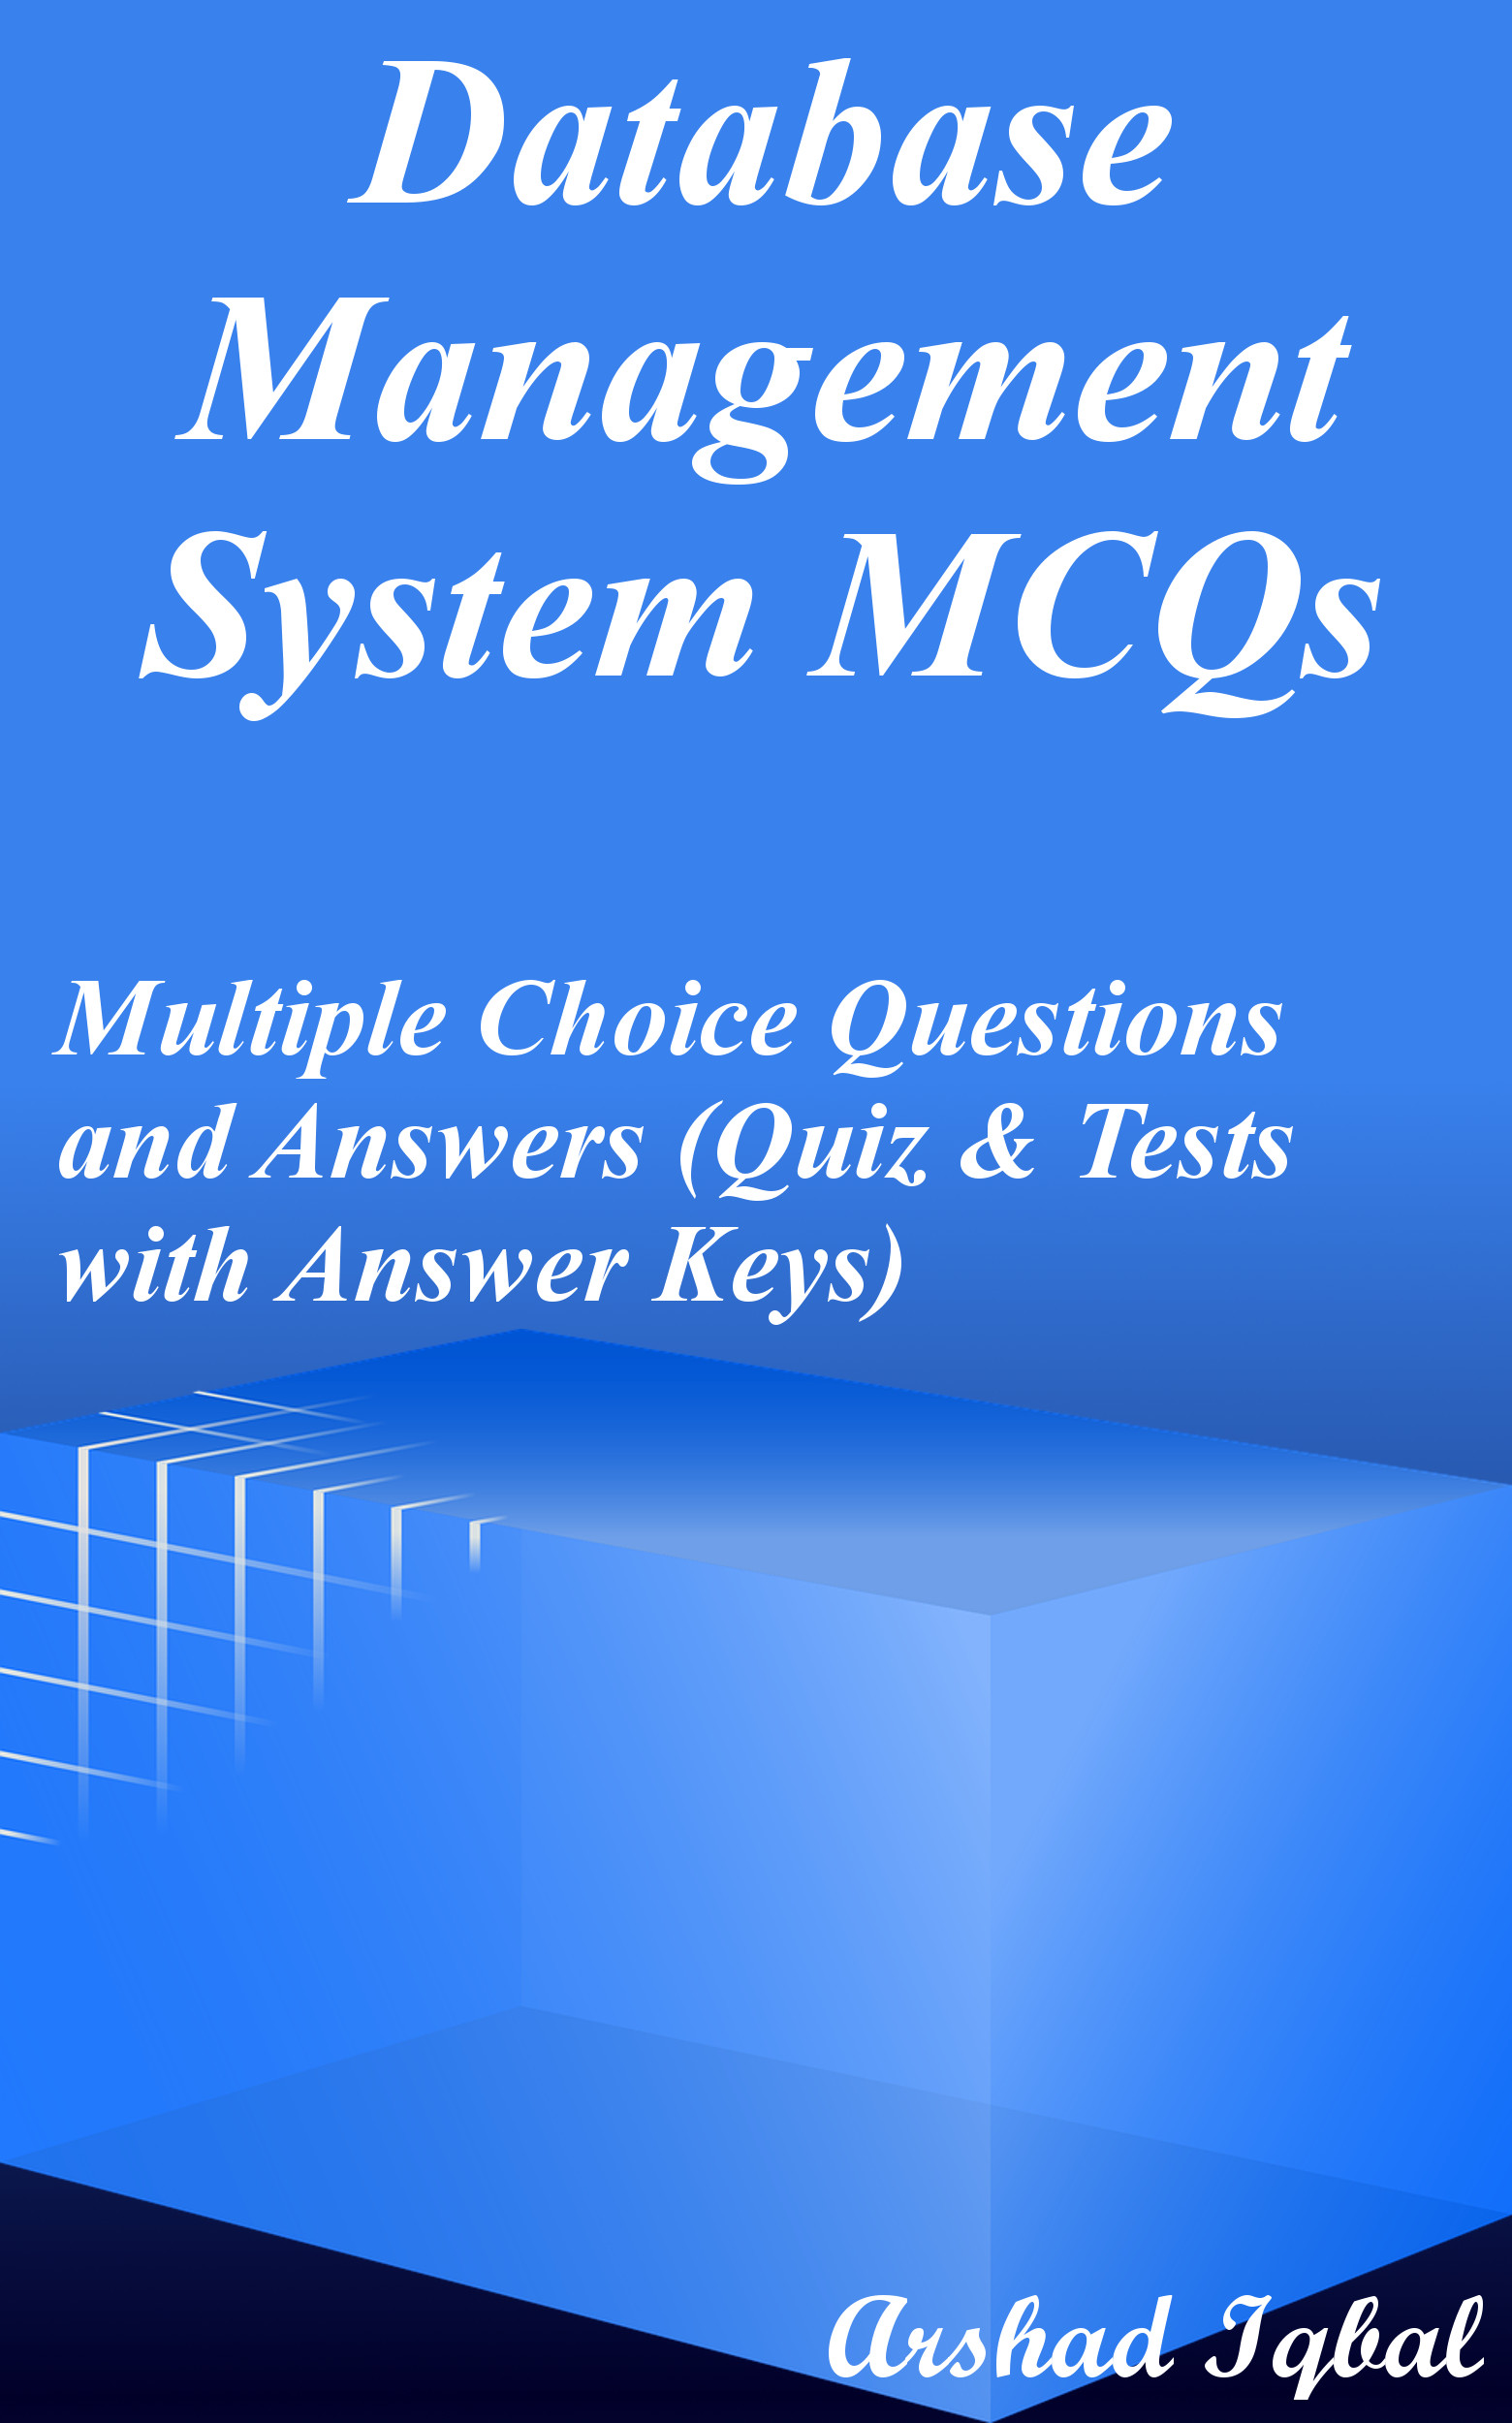 Database Management System Multiple Choice Questions and Answers (MCQs): Quizzes & Practice Tests with Answer Key